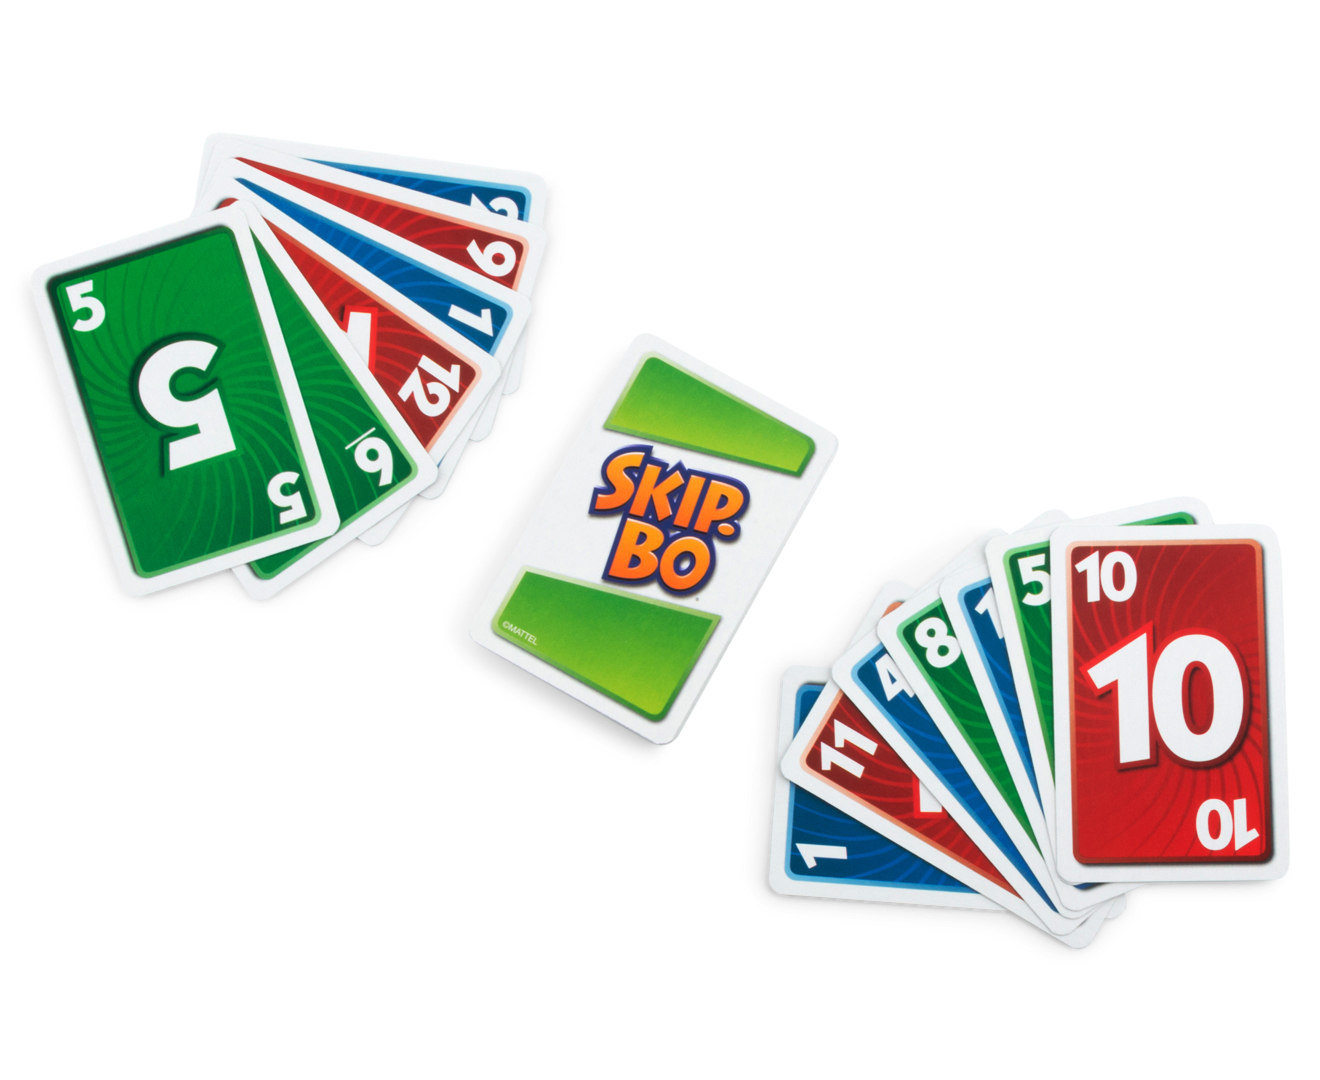 how to play golf card game with skip-bo cards